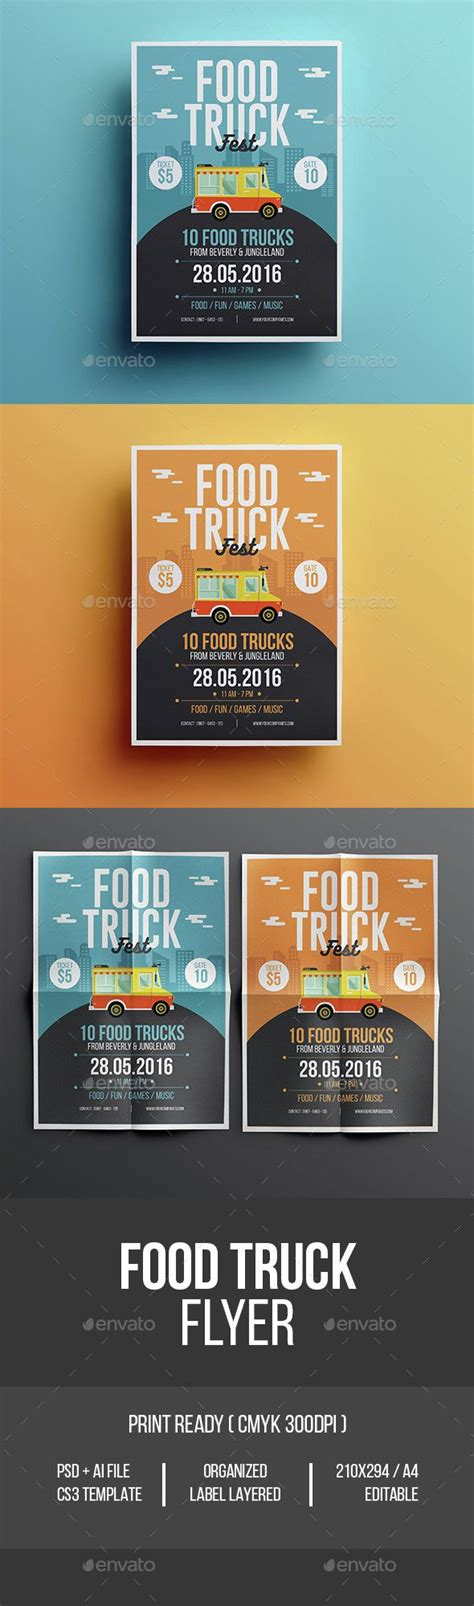 Event Flyer Layout Ideas | food truck flyer gardens creative and promotion